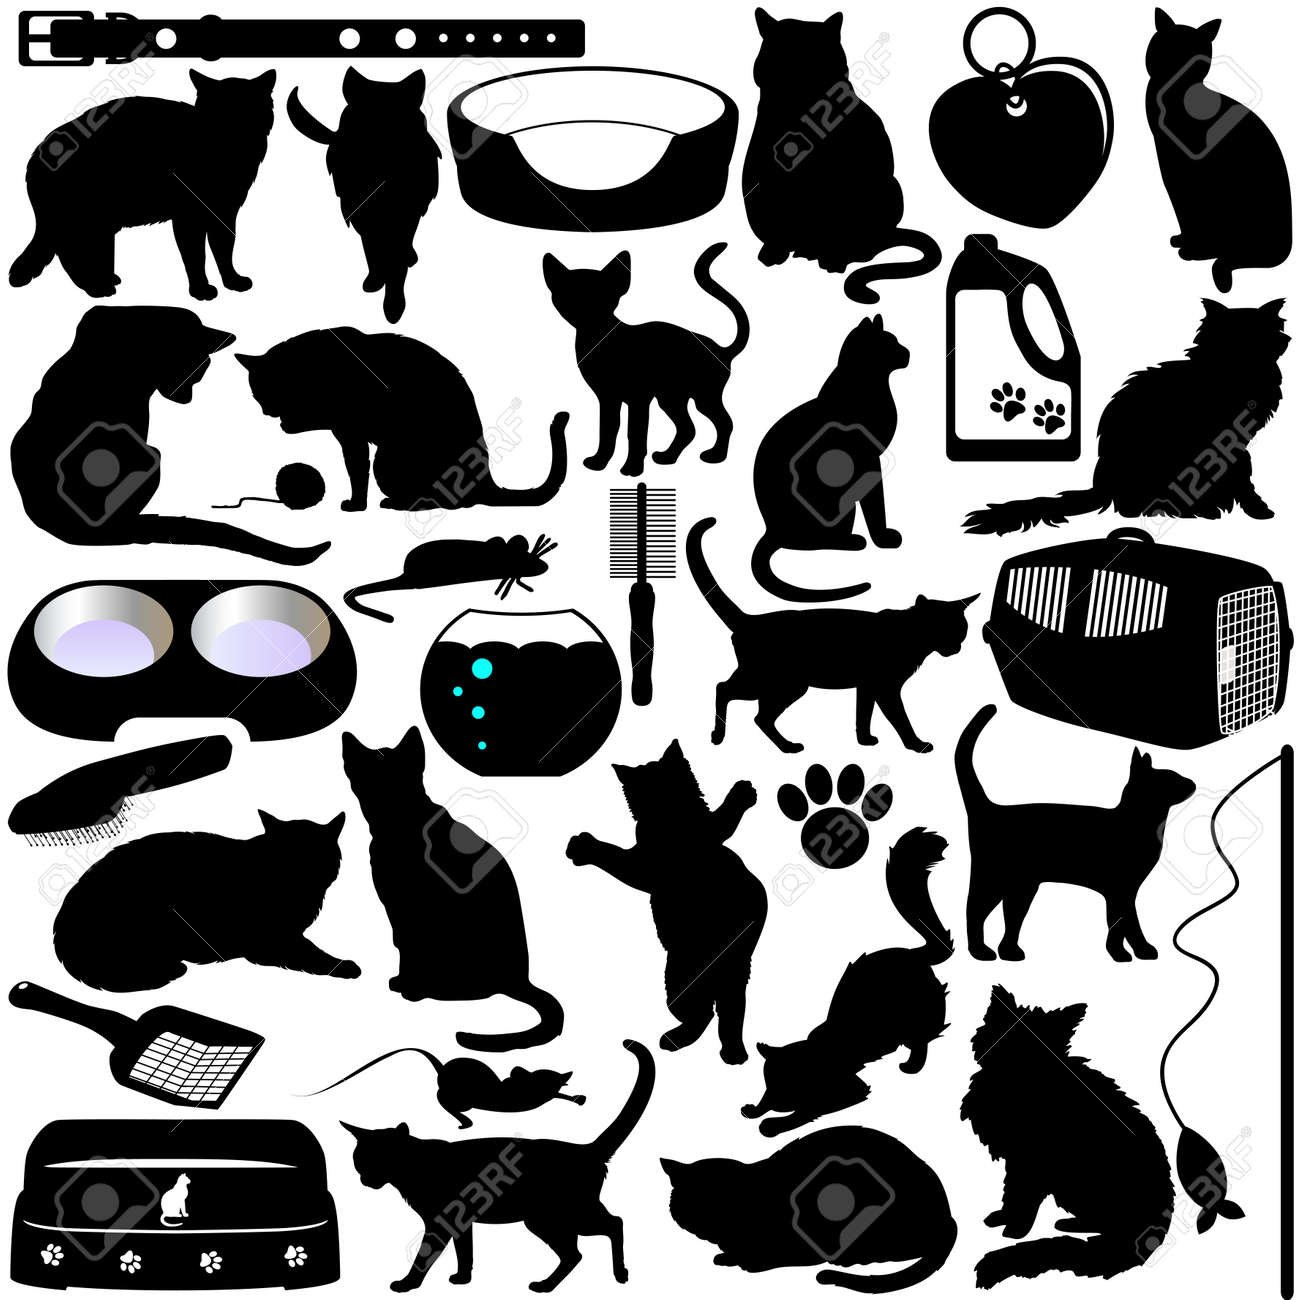 Silhouettes of Cats, Kittens and Accessories Stock Vector - 12119574